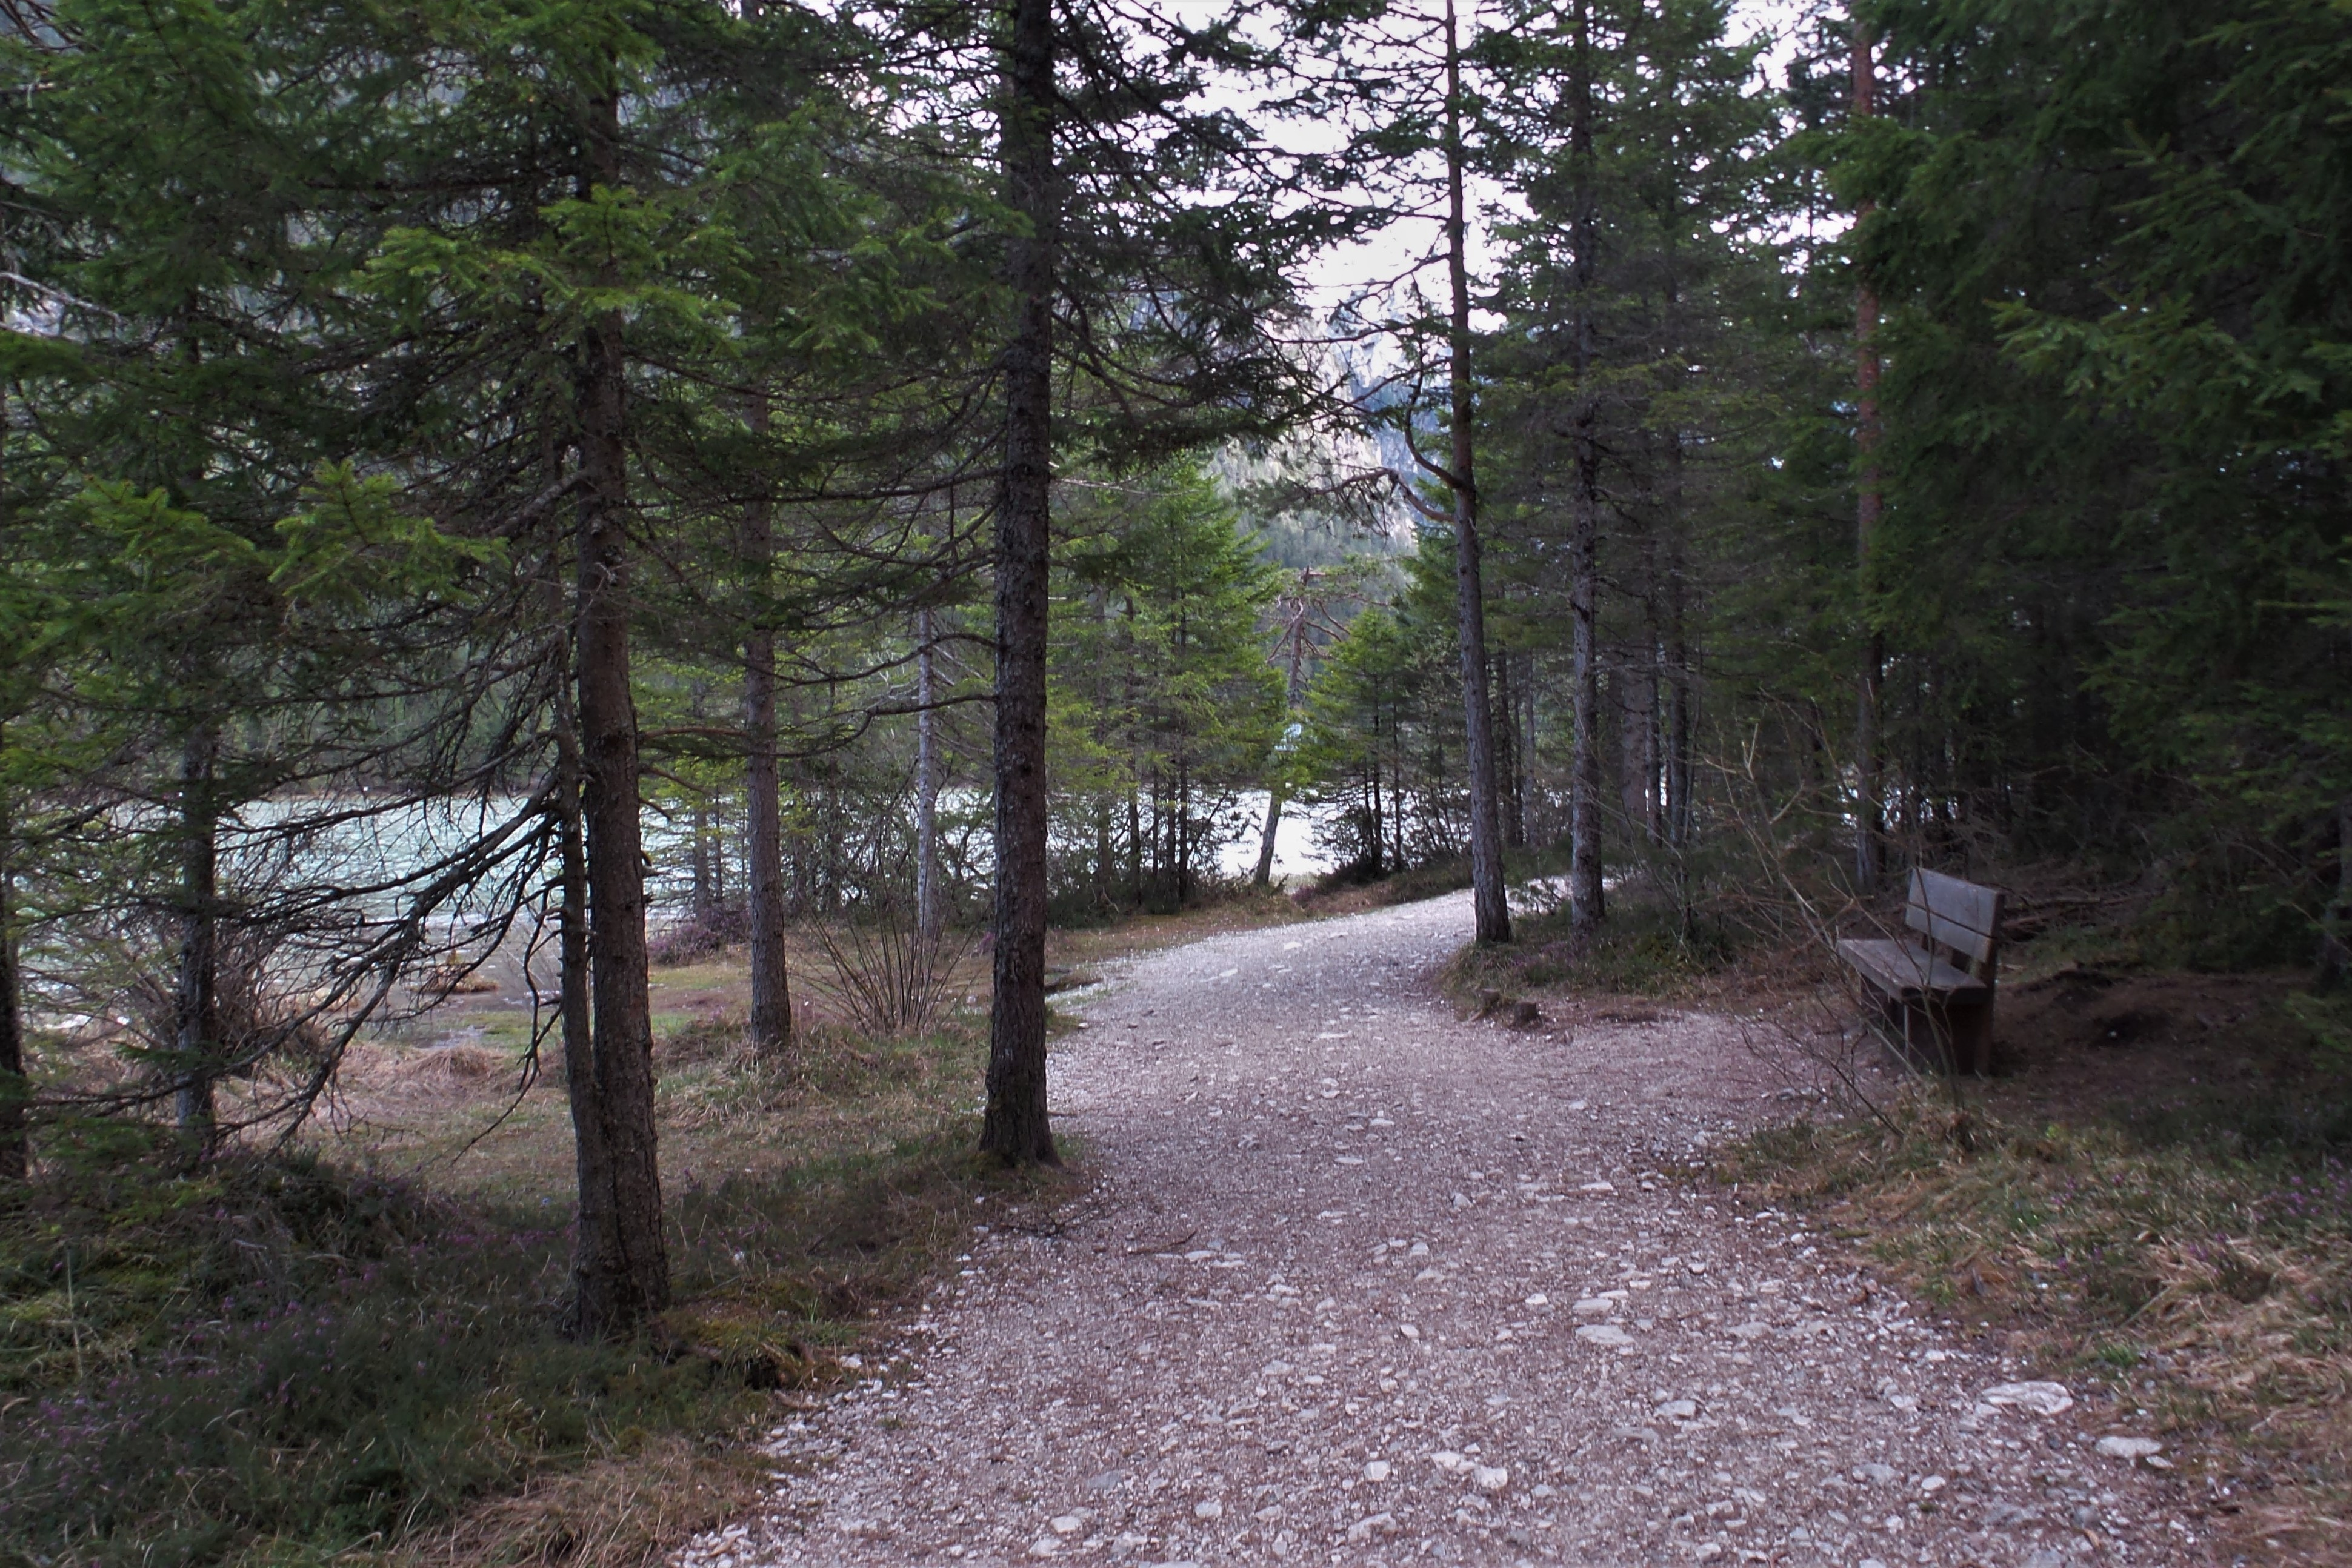 Spaziergang am Toblacher See